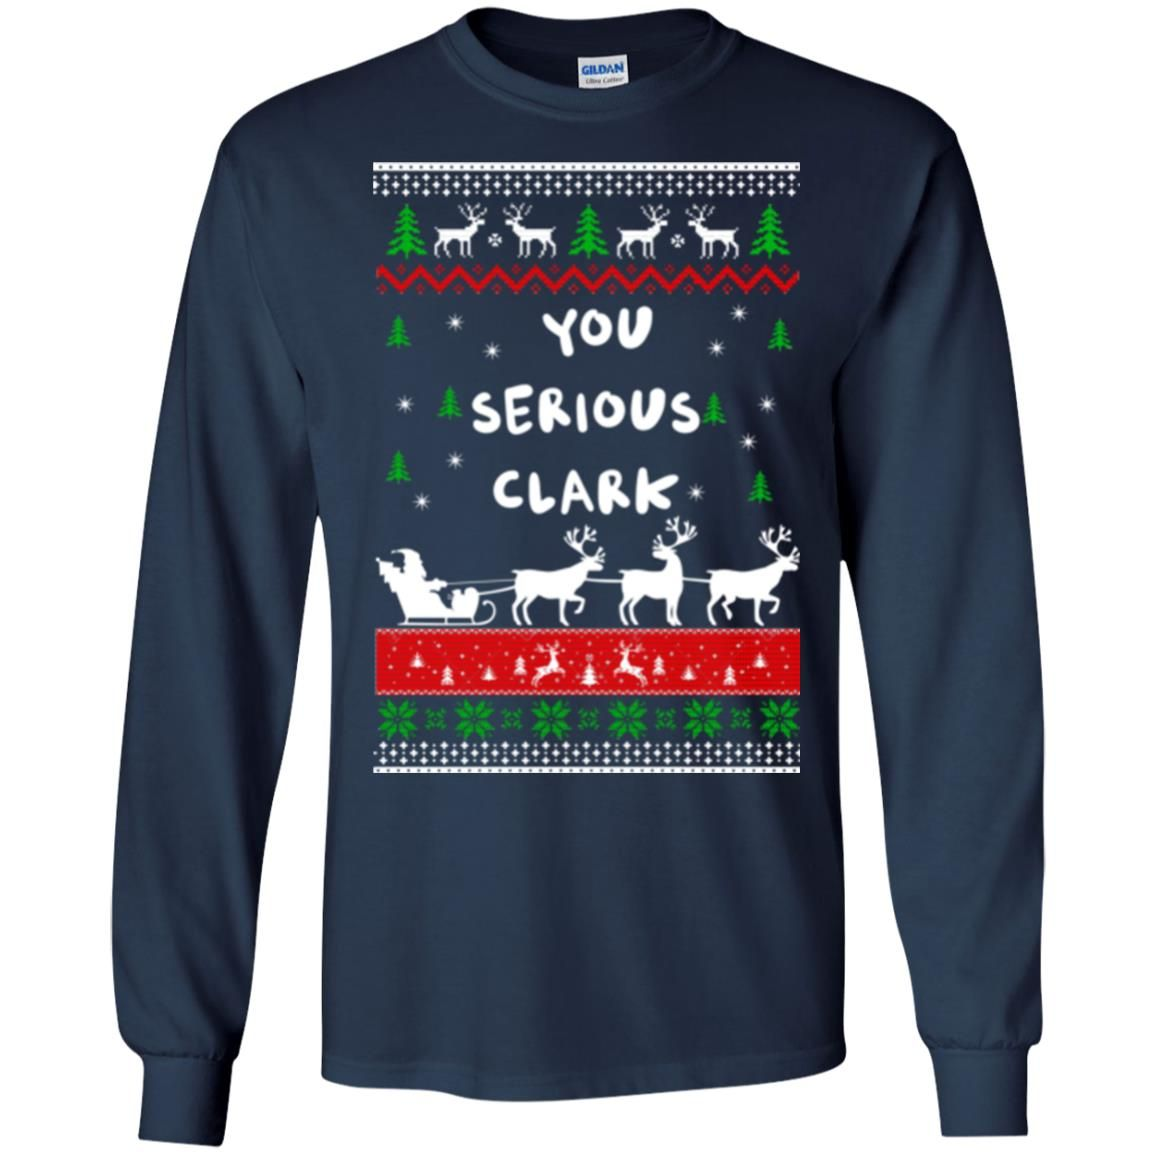 image 1720 - Christmas Vacation: You serious Clark sweater, t-shirt